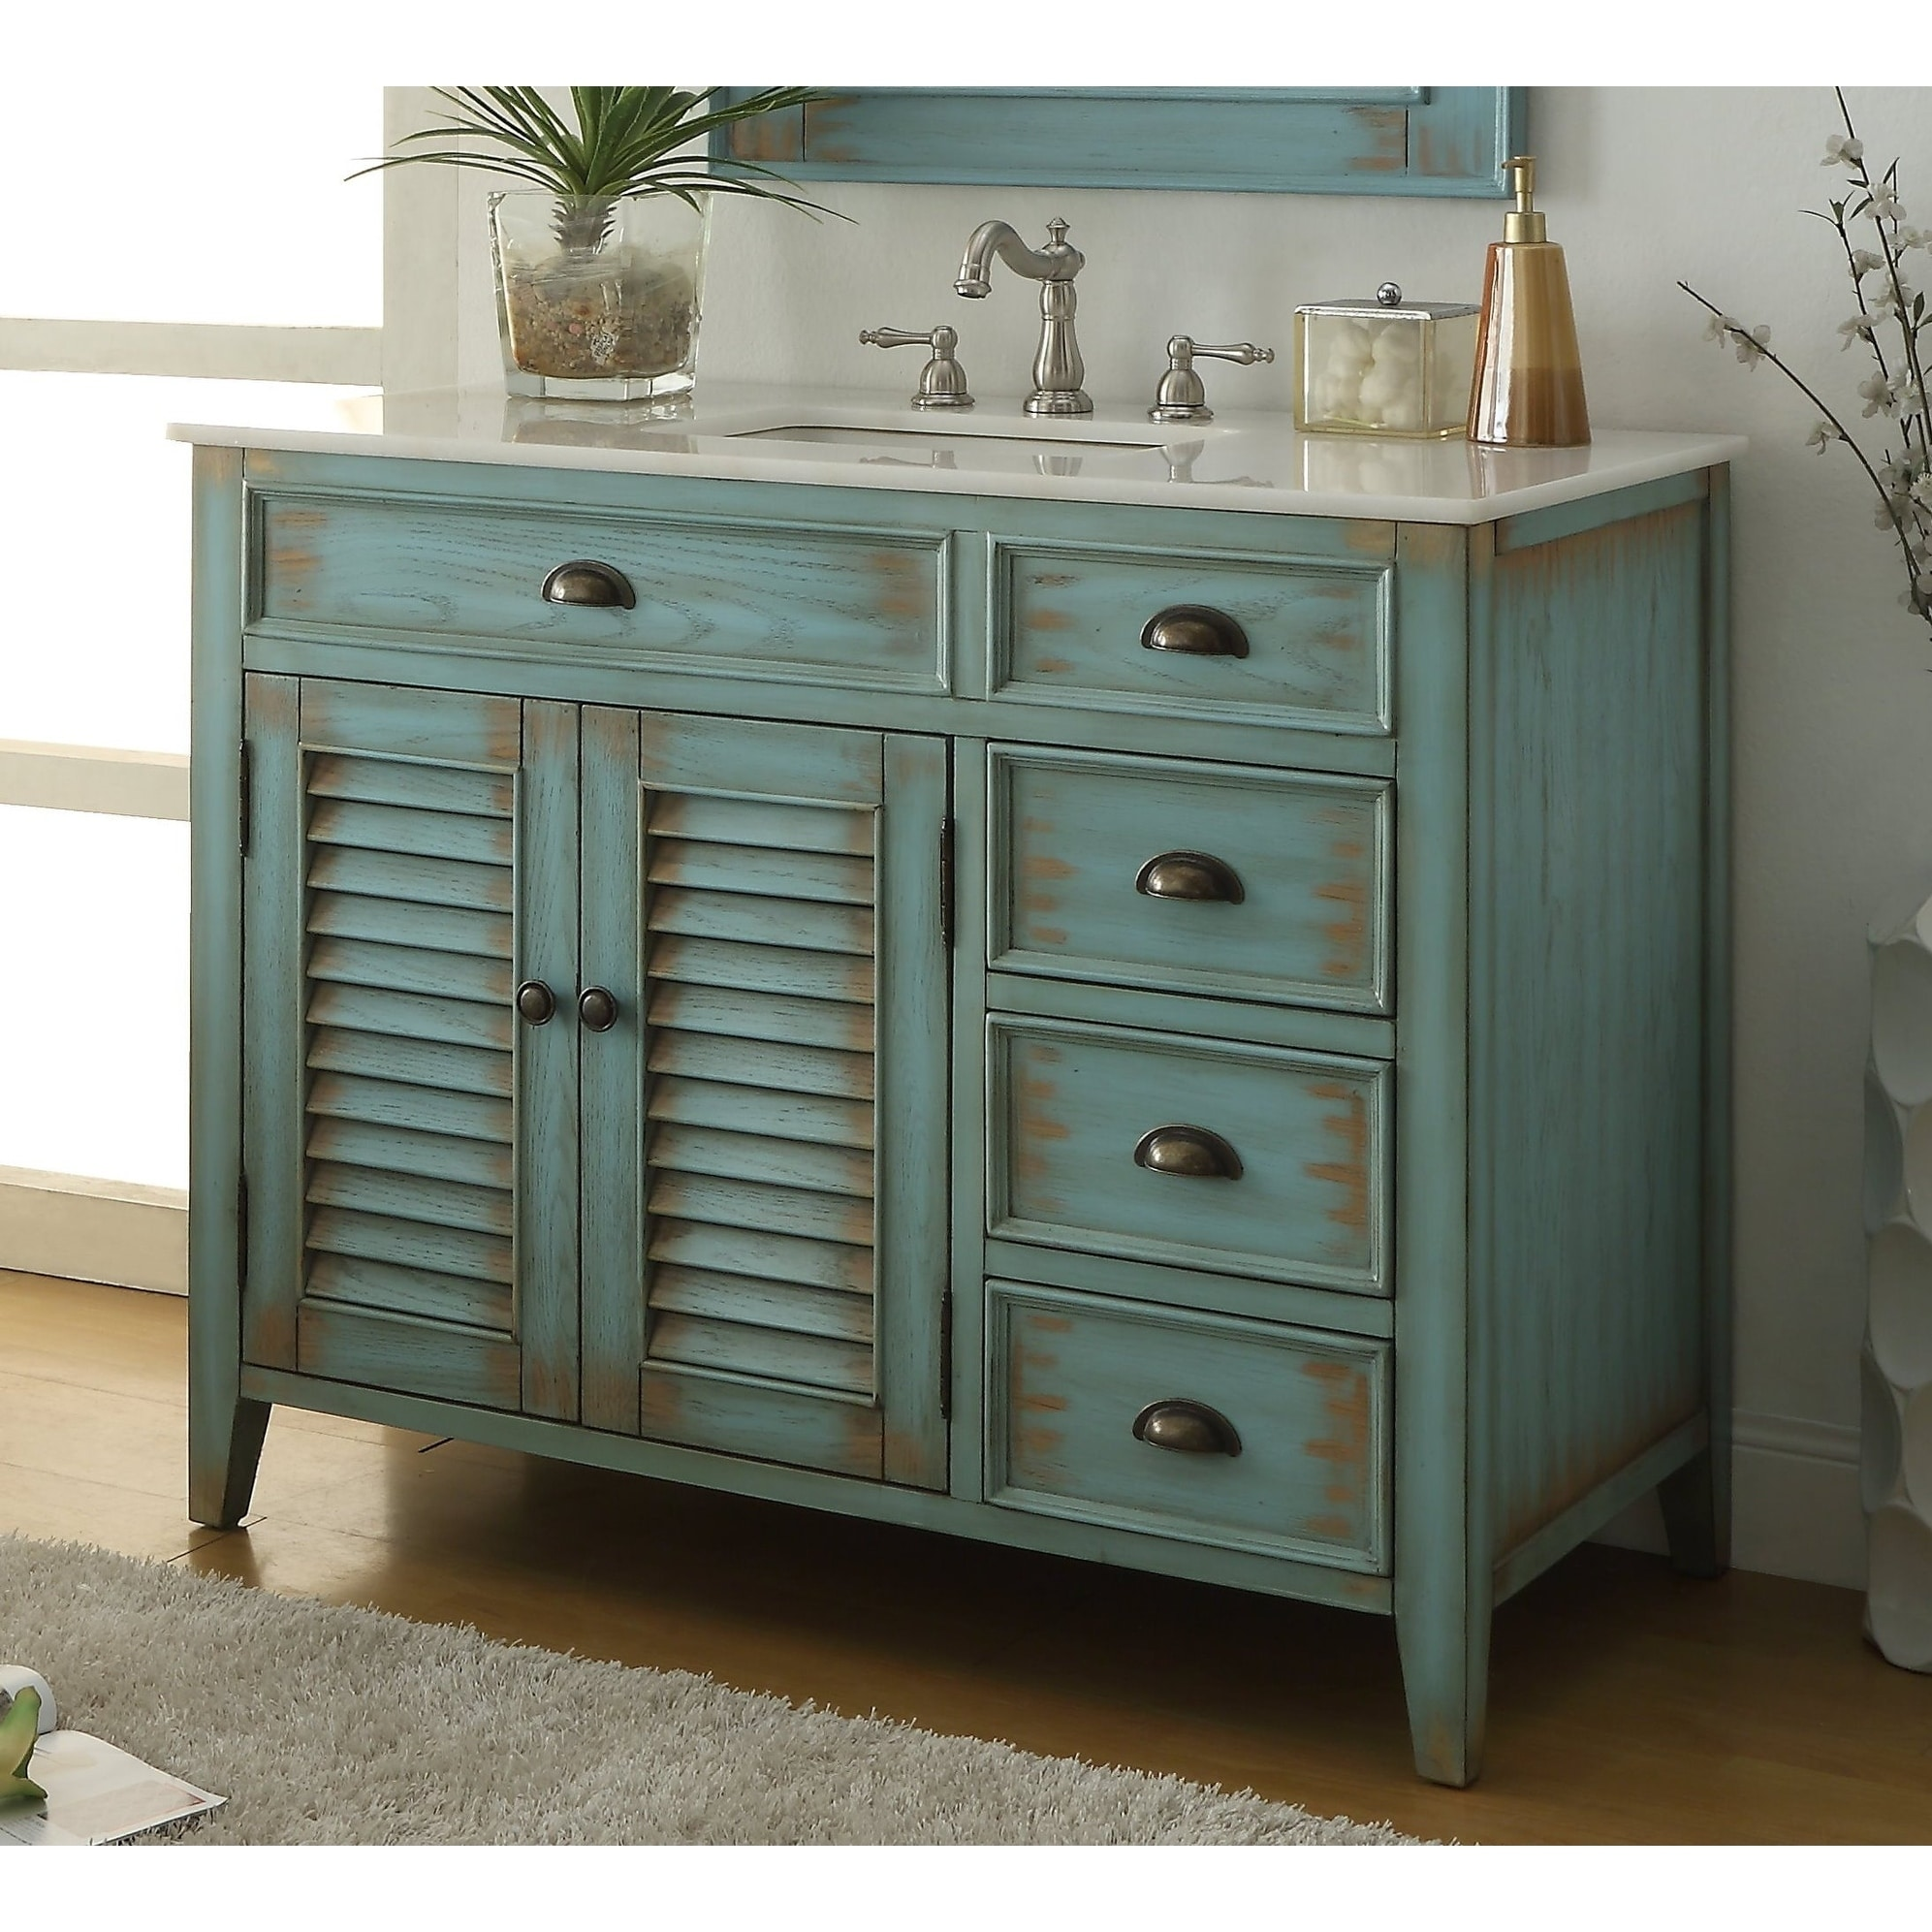 42 Benton Collection Abbeville Distressed Blue Rustic Bathroom Vanity On Sale Overstock 27663028